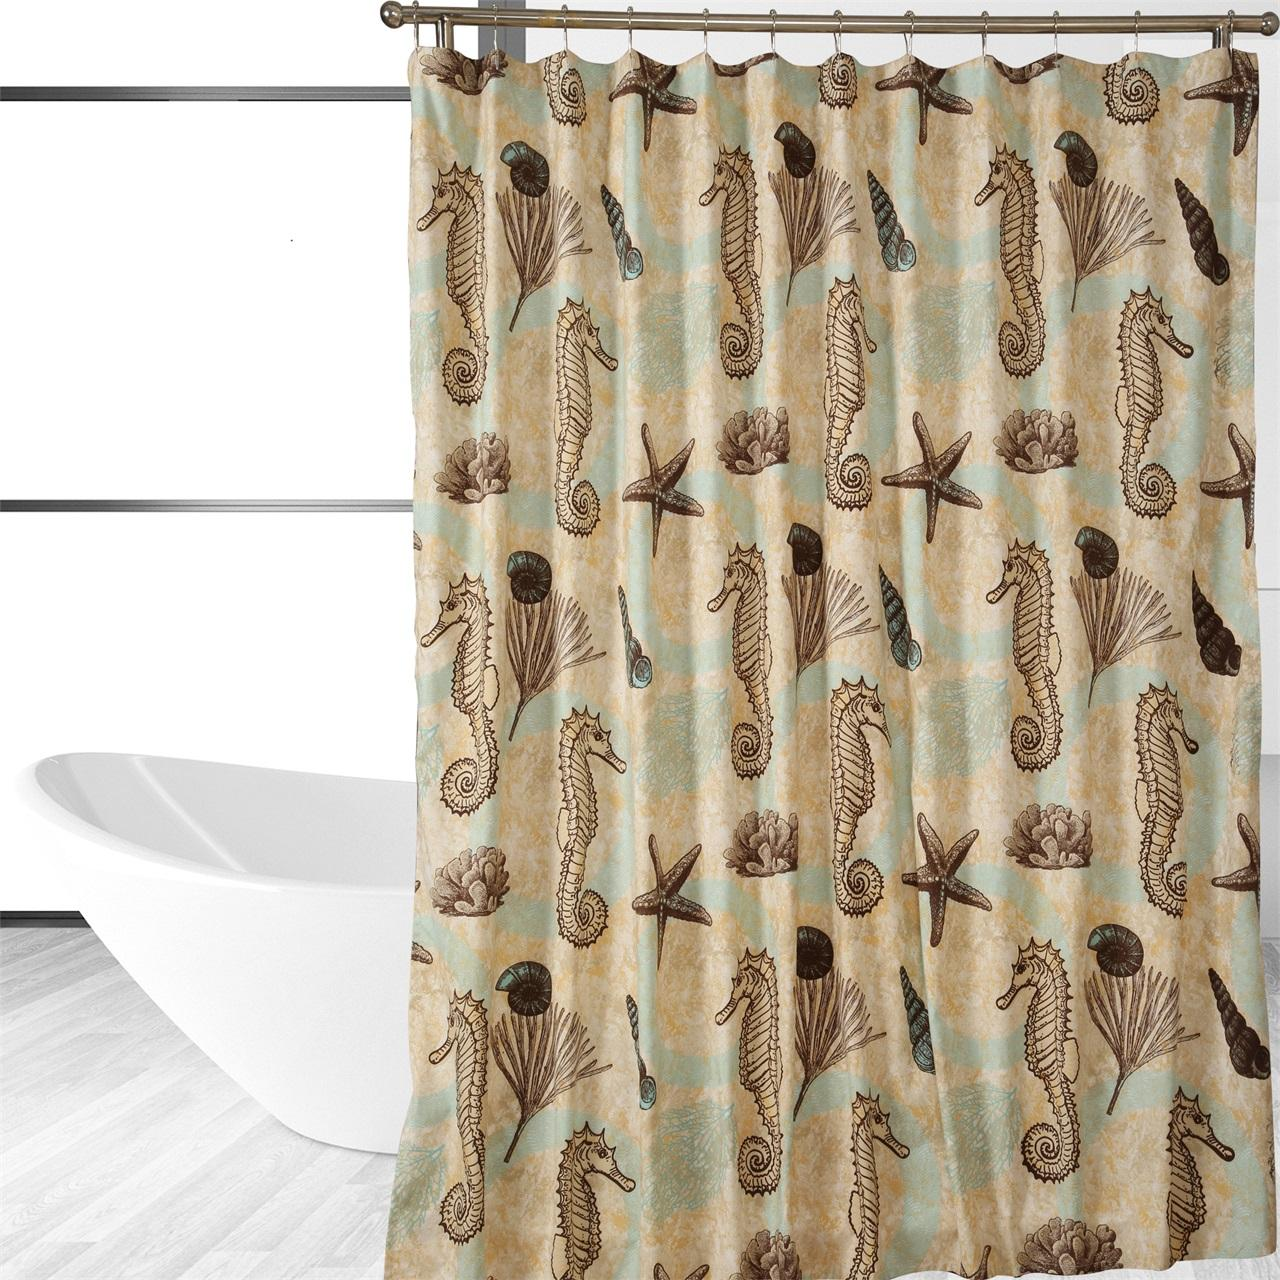 Adult theme shower curtain cute